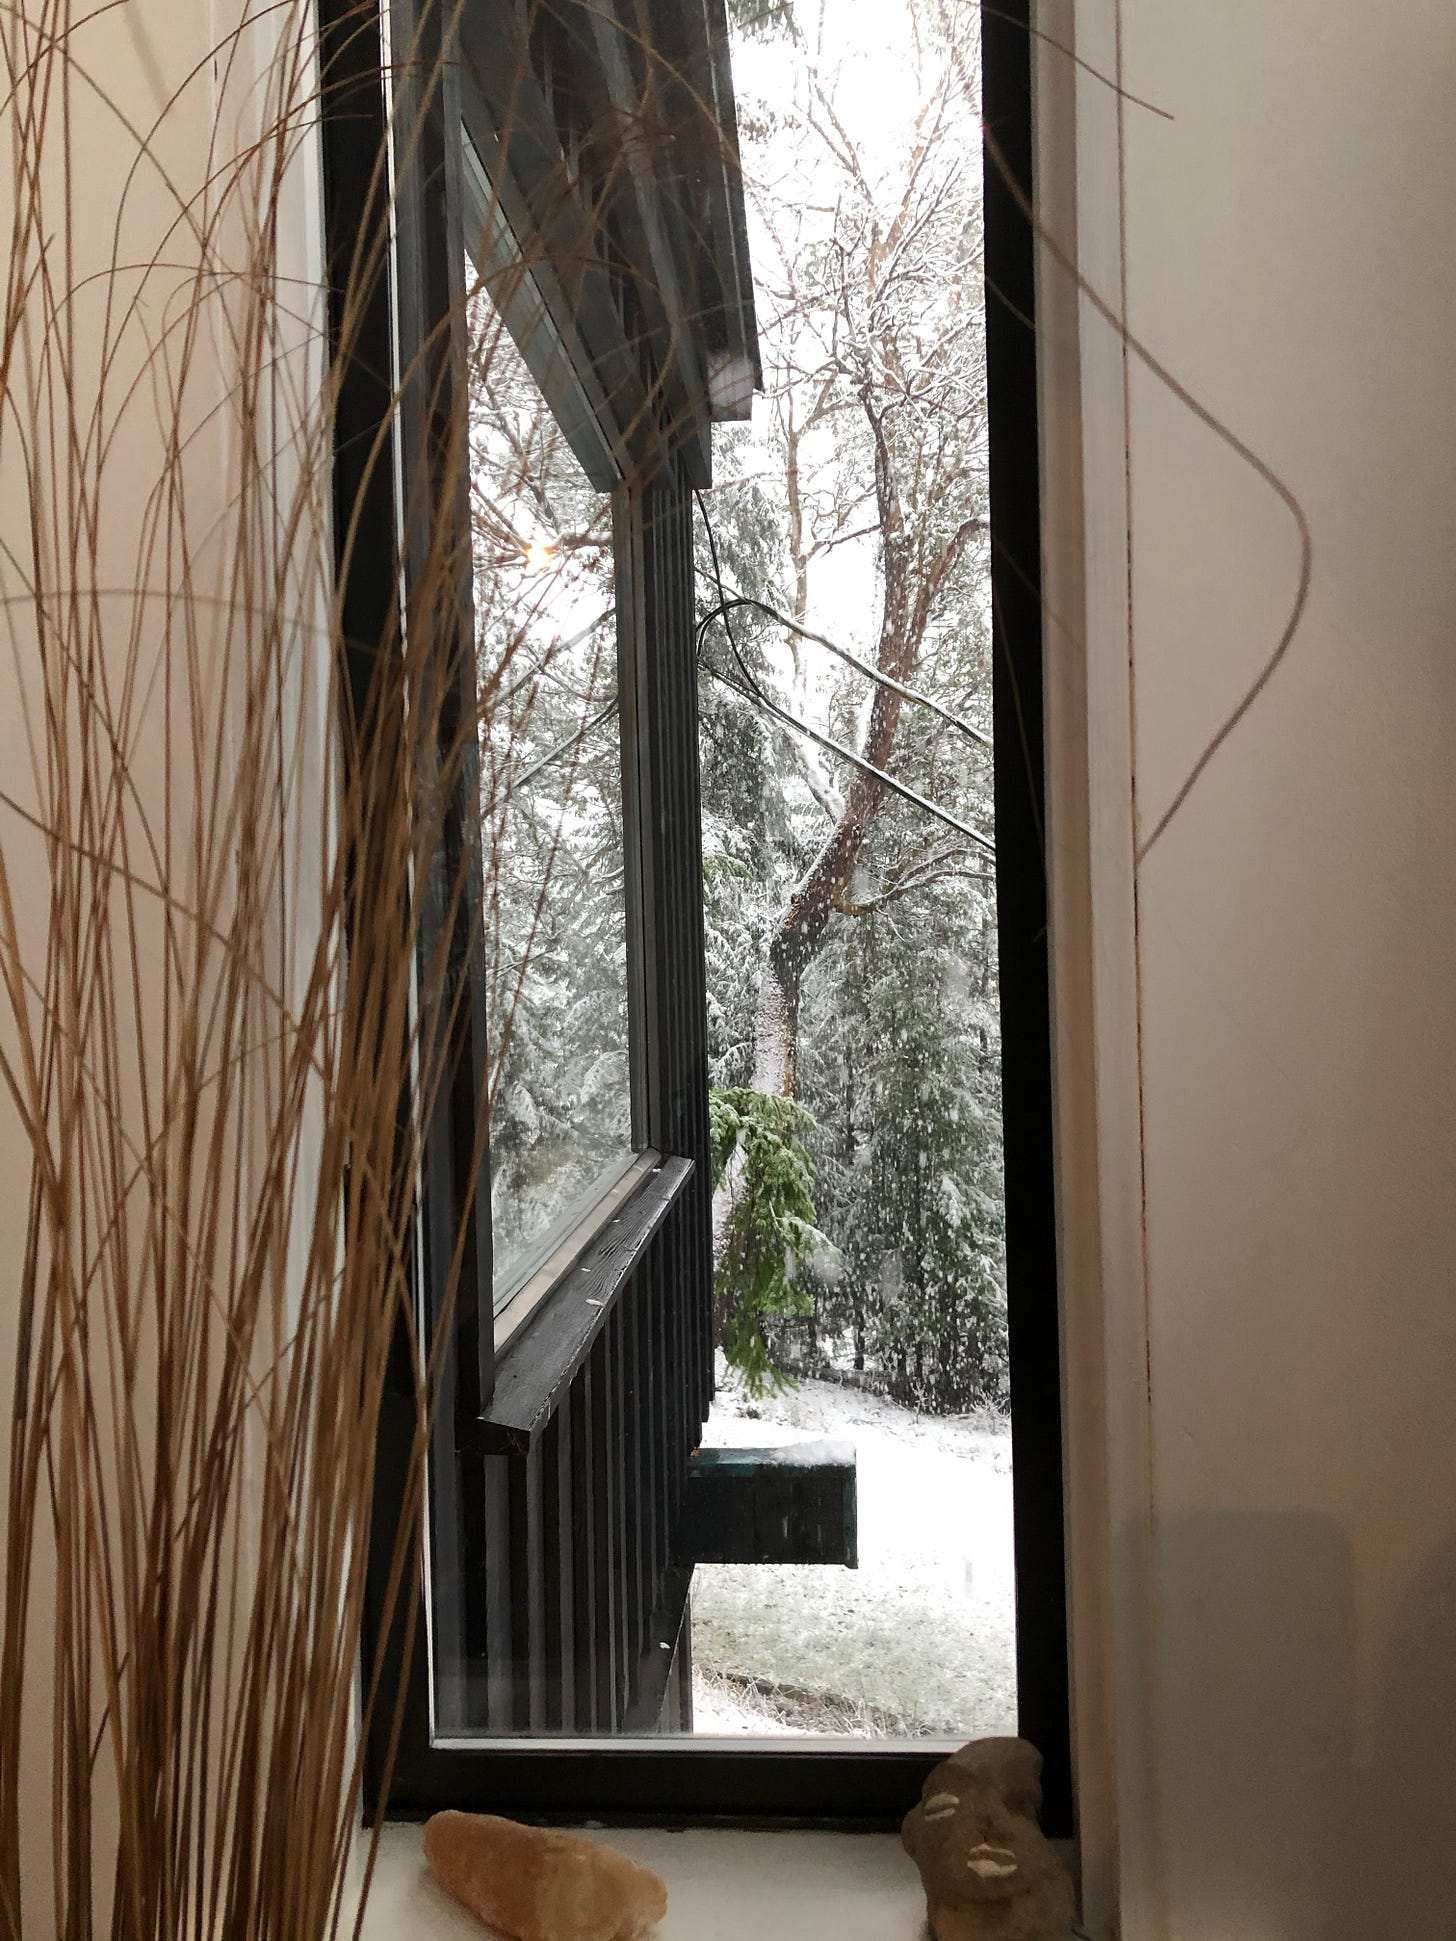 View from indoors toward the snowy trees